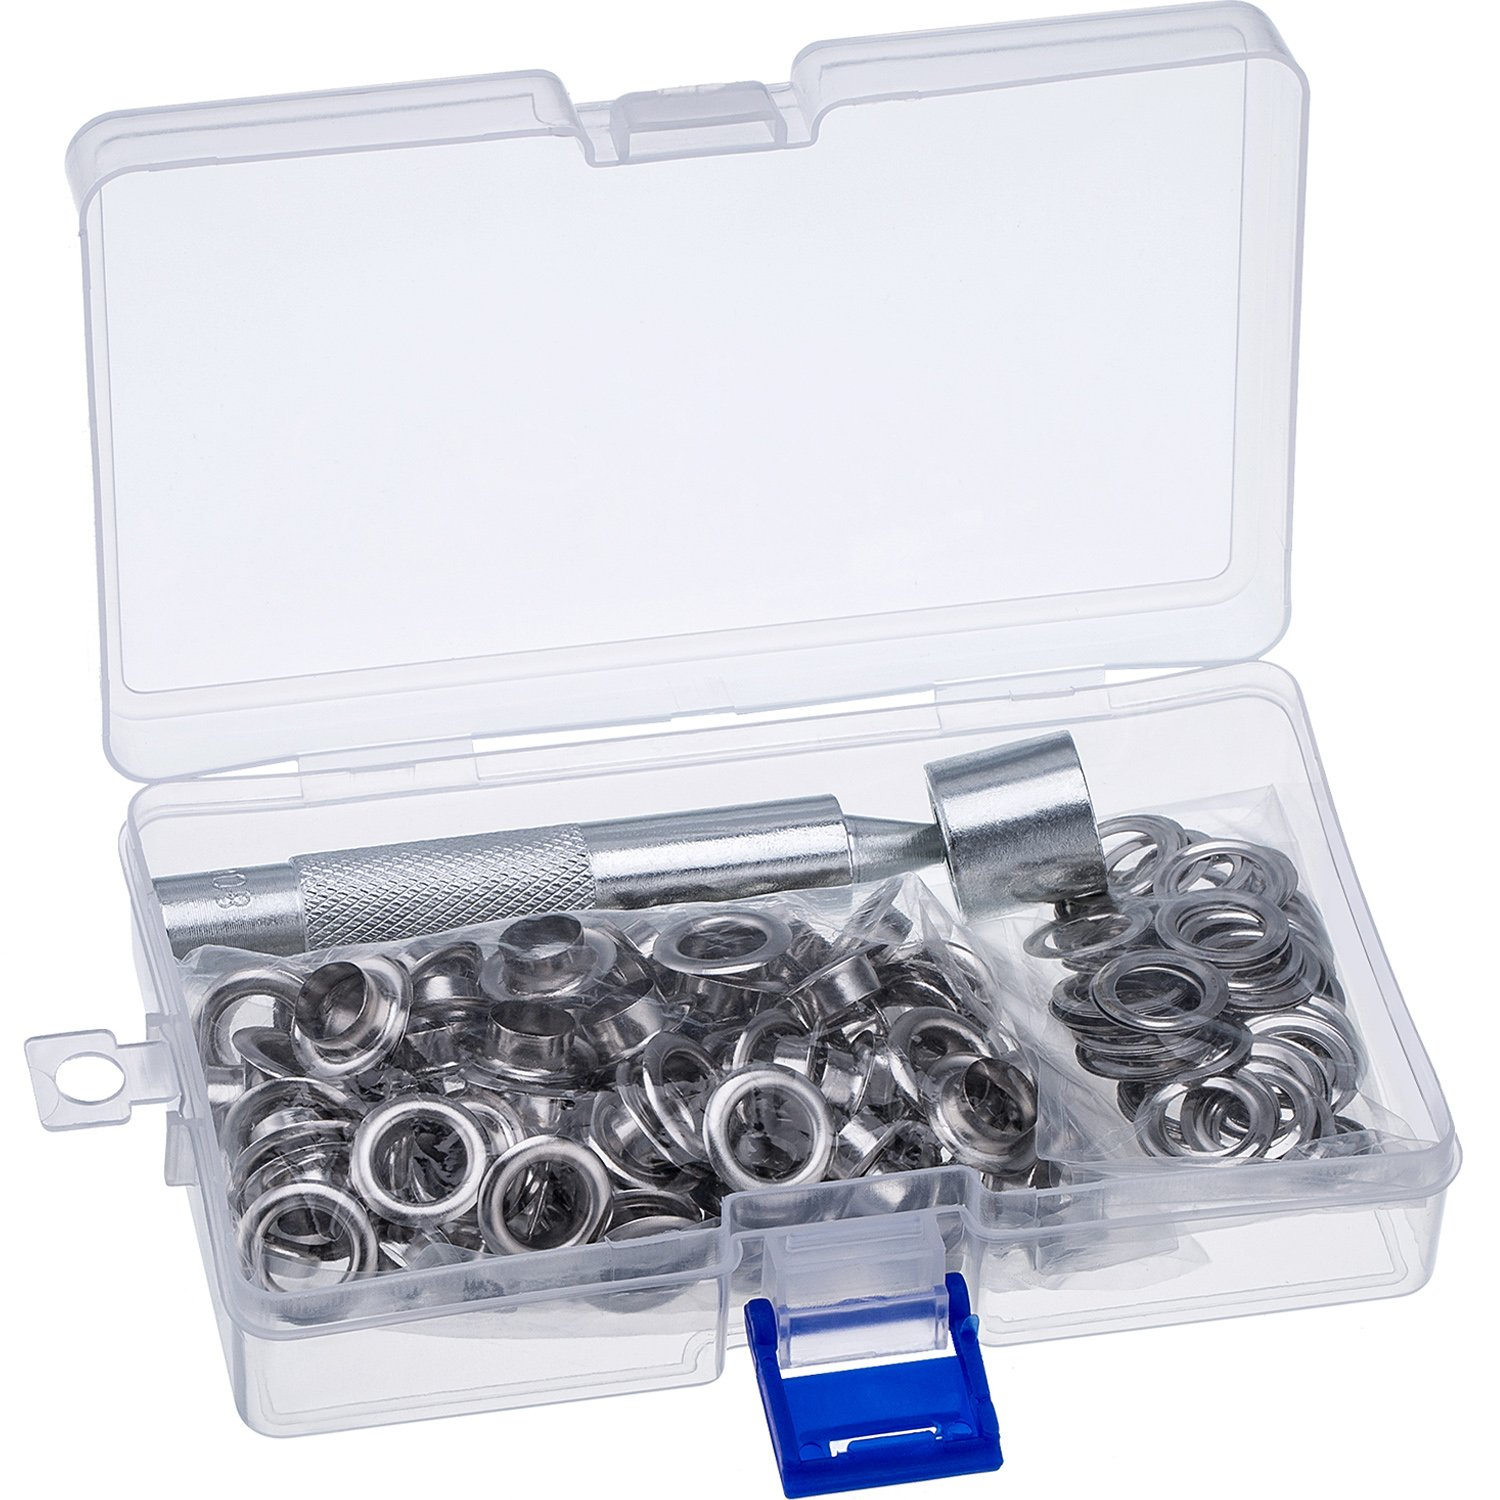 Grommet Tool Kit, Grommet Setting Tool and 100 Sets Grommets Eyelets with Storage Box (1/ 2 Inch Inside Diameter) Pangda